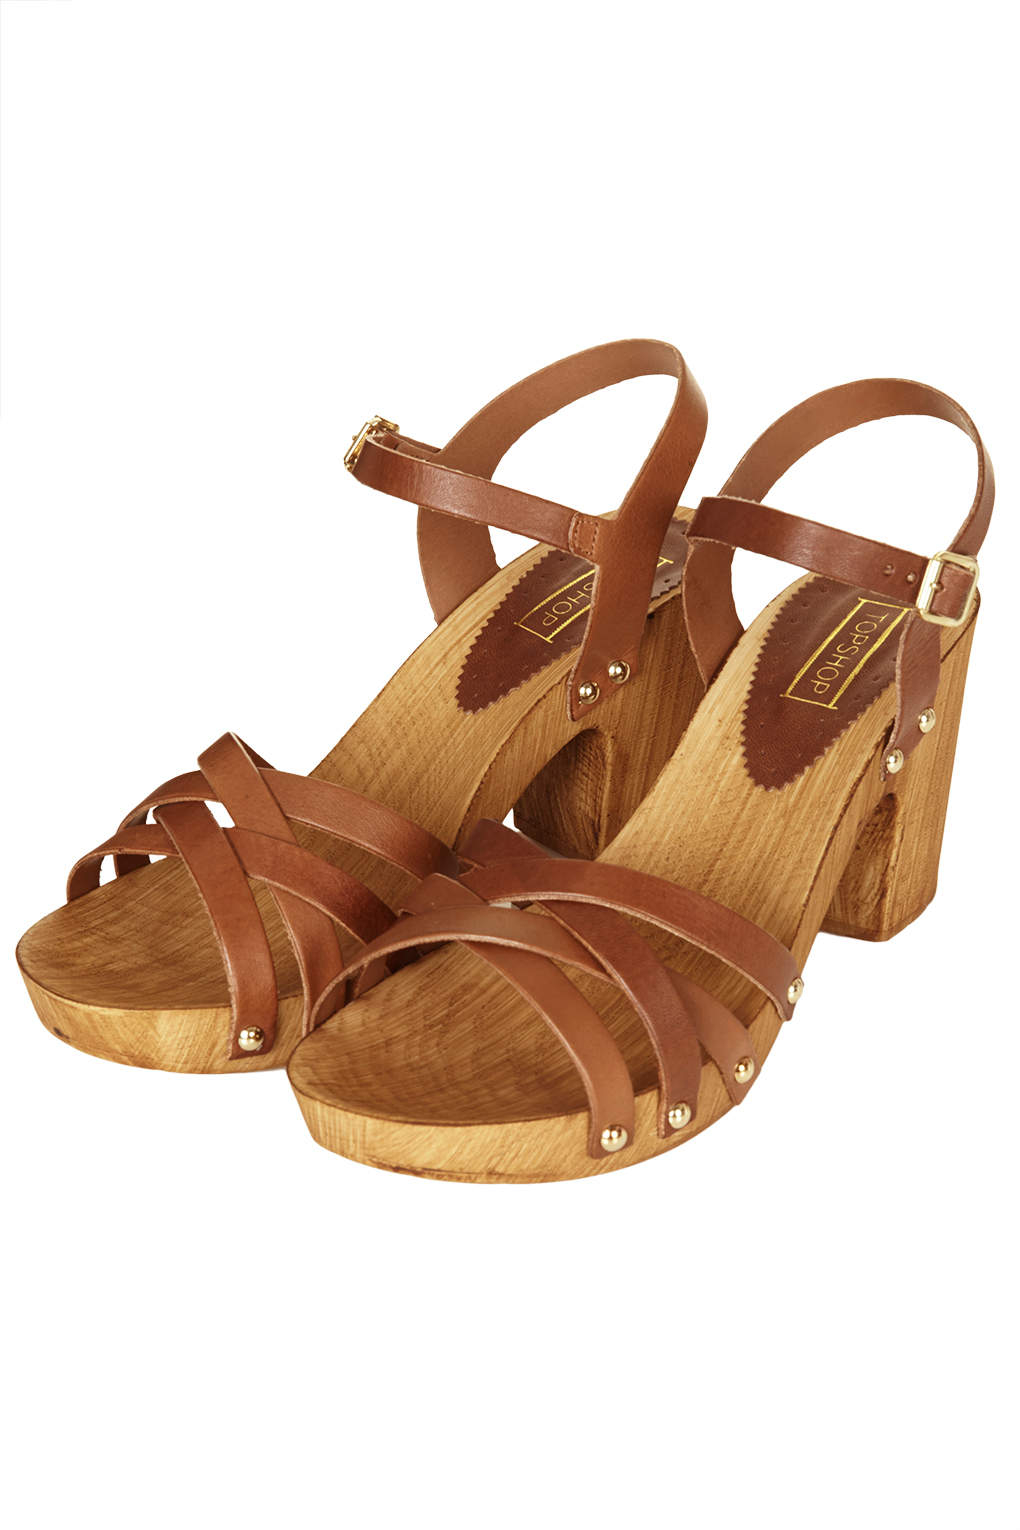 0c04b8b6c5a4 Lyst - TOPSHOP Nancy Chunky Wooden Sandals in Brown